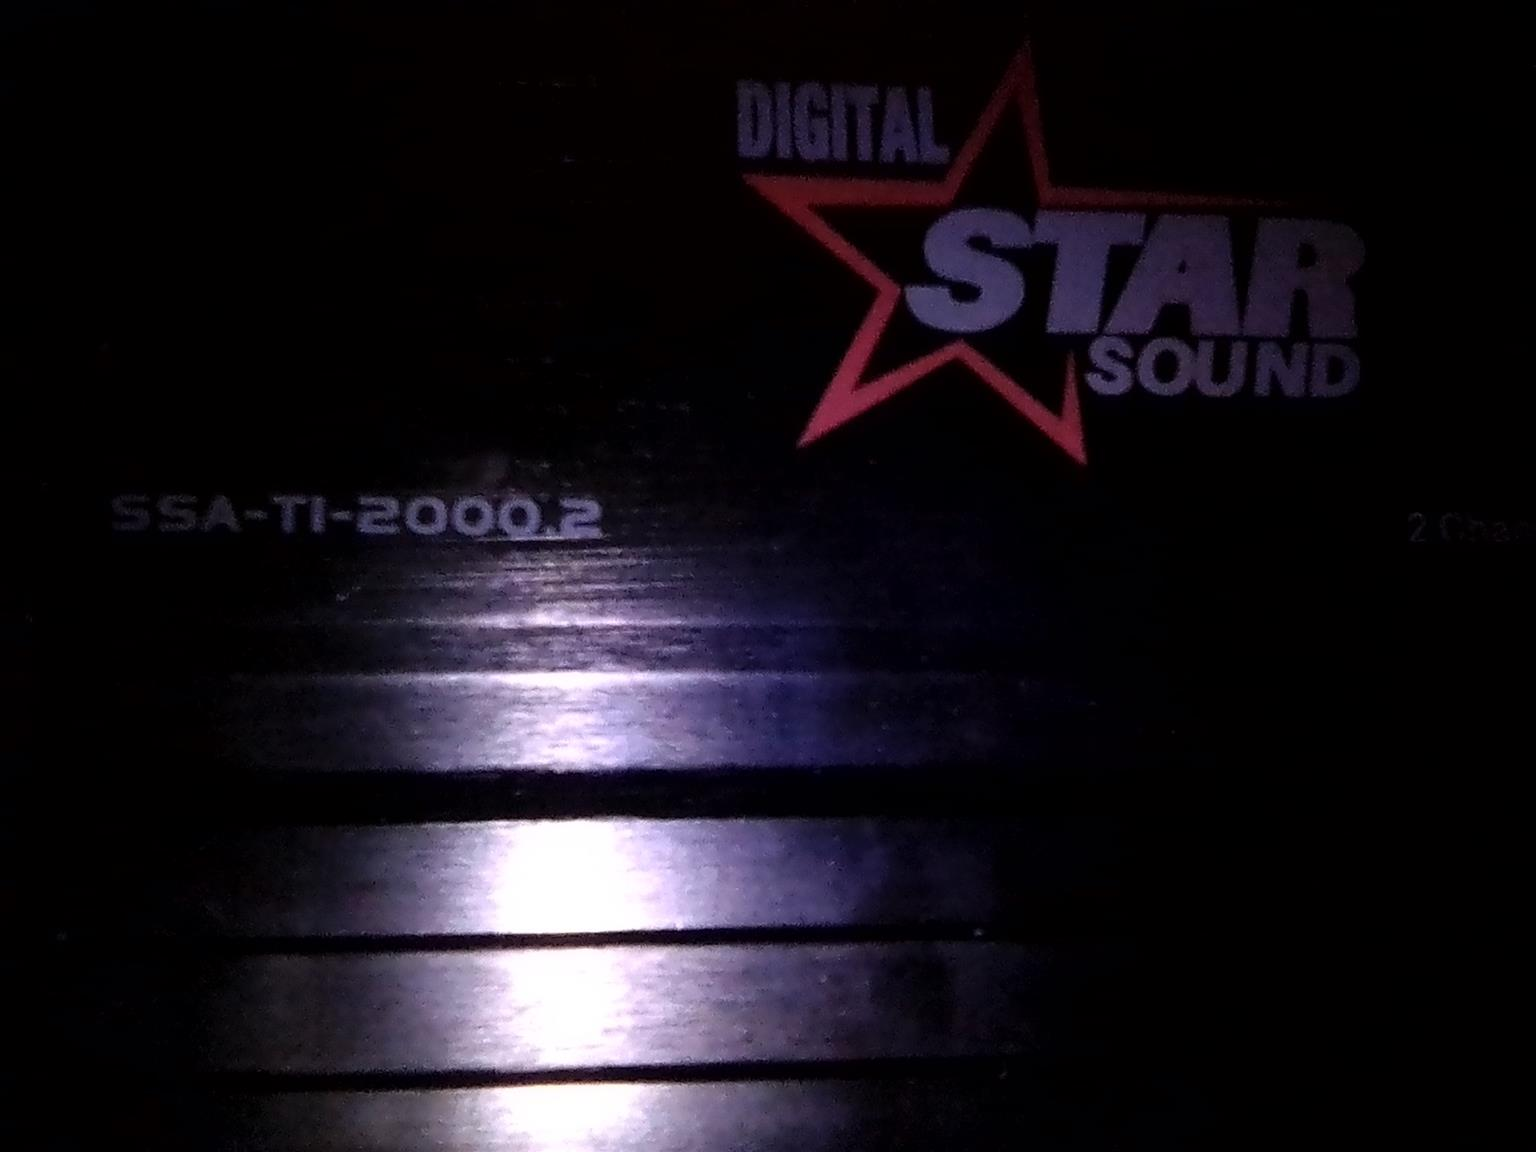 Used Digital Star Sound Amplifier for sale